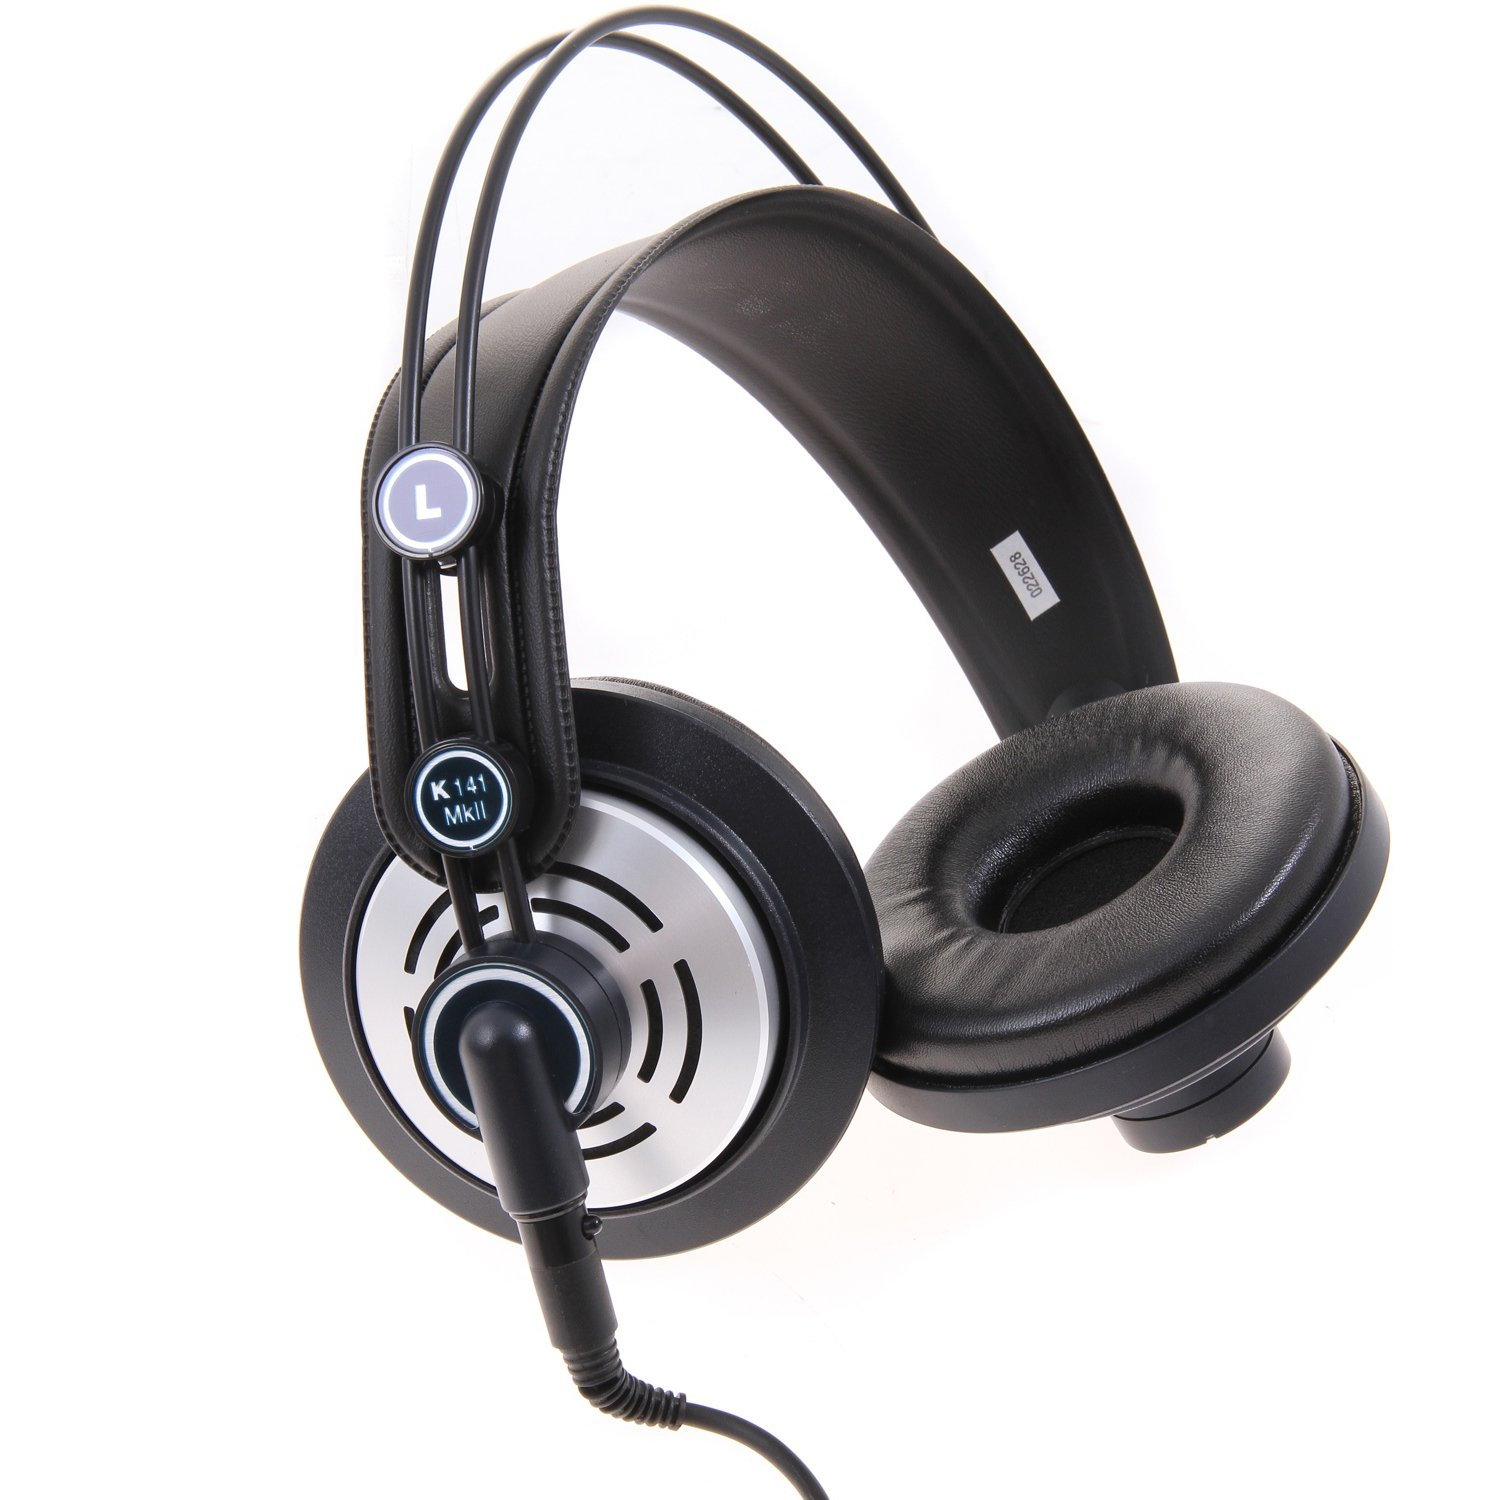 317793abfd0 AKG K141 MKII Professional Semi-Open, On-Ear Studio Headphones:  Amazon.co.uk: Musical Instruments